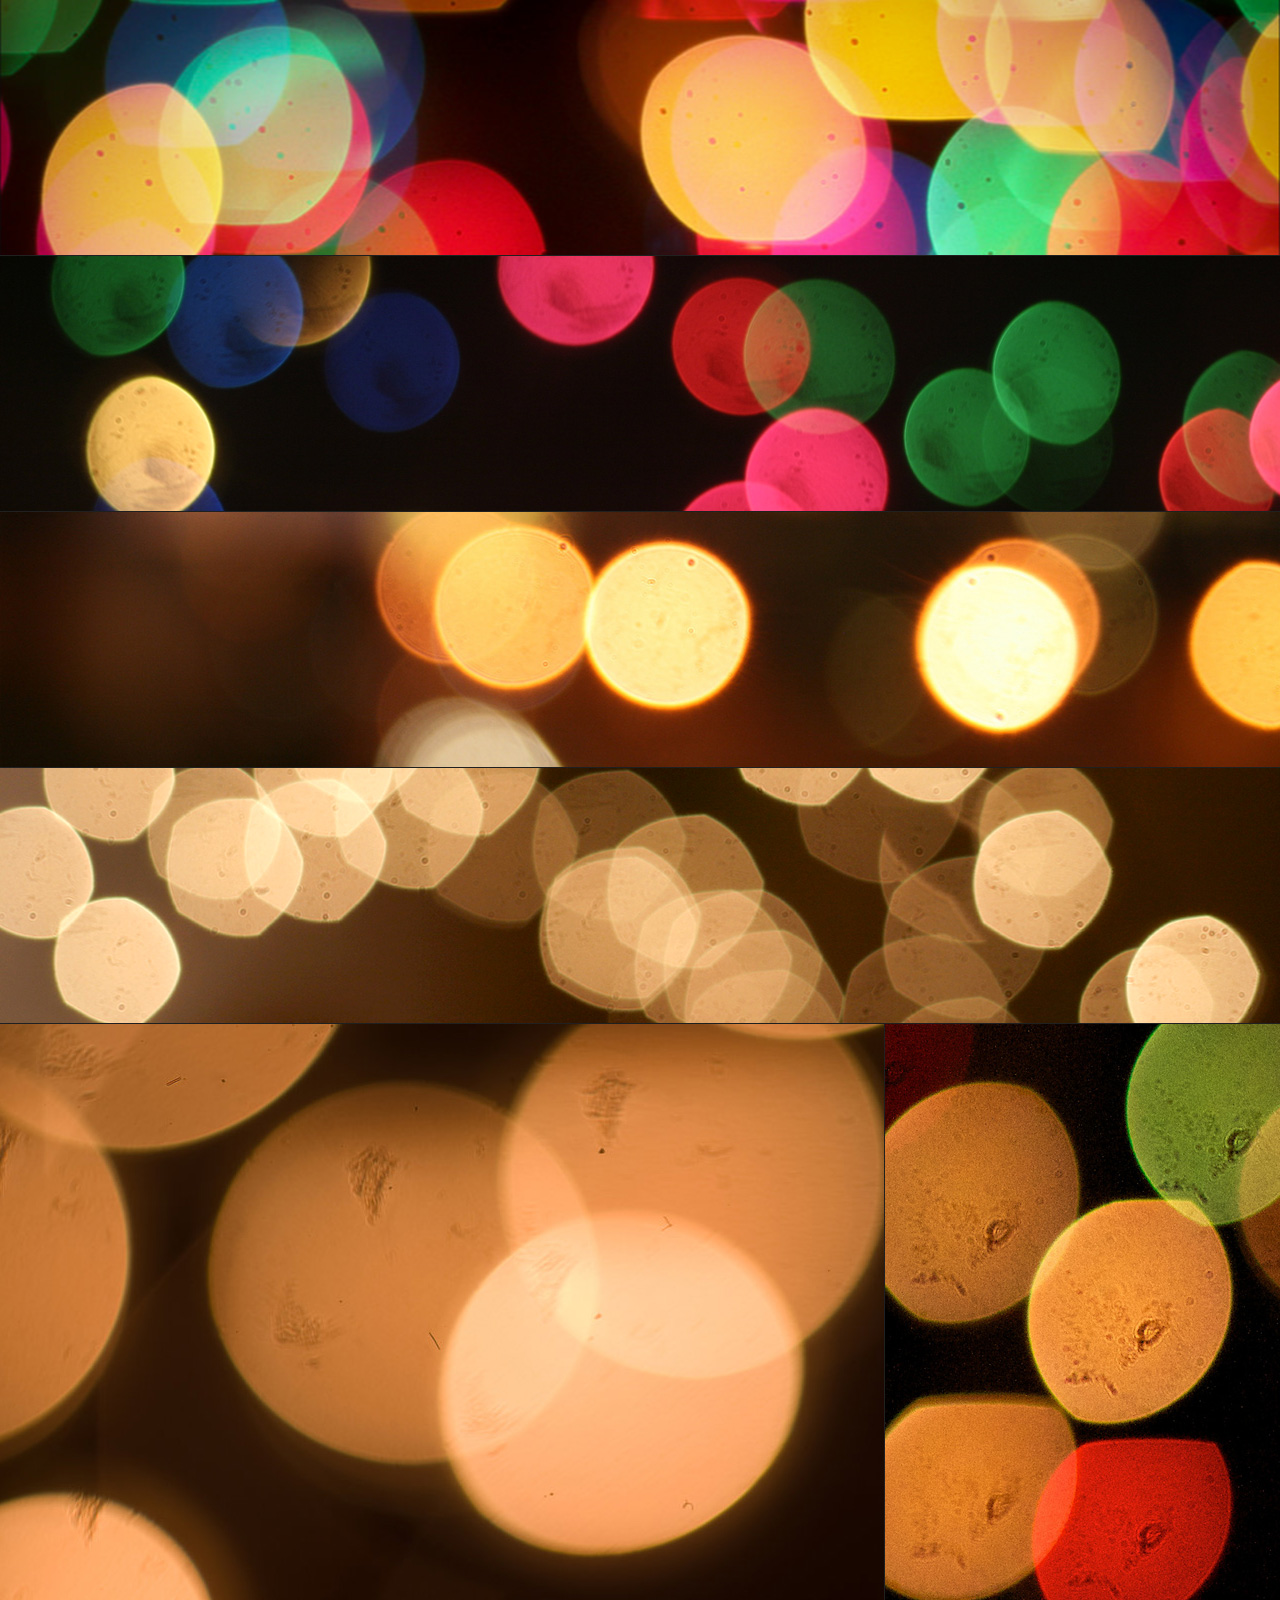 DOF PRO Real-world Dirty Bokeh Examples